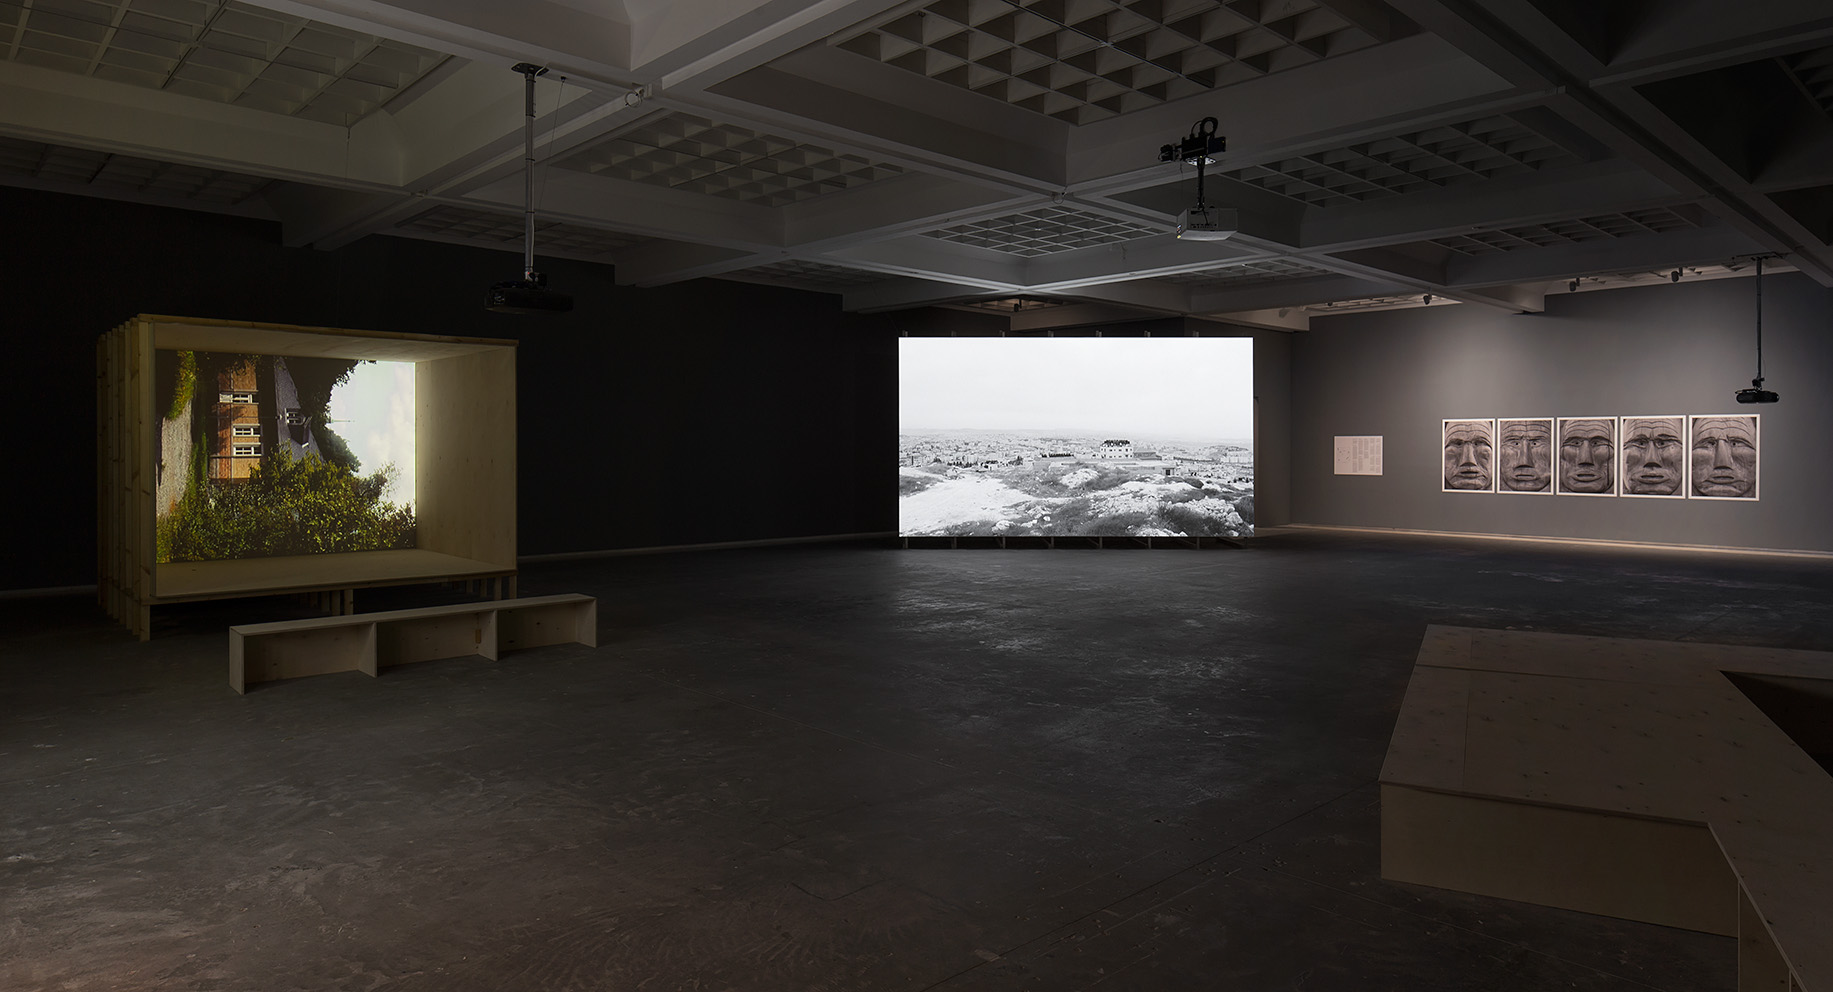 Installation view at 'Masad' Solo show at the Tel Aviv Museum of Art, June 2016